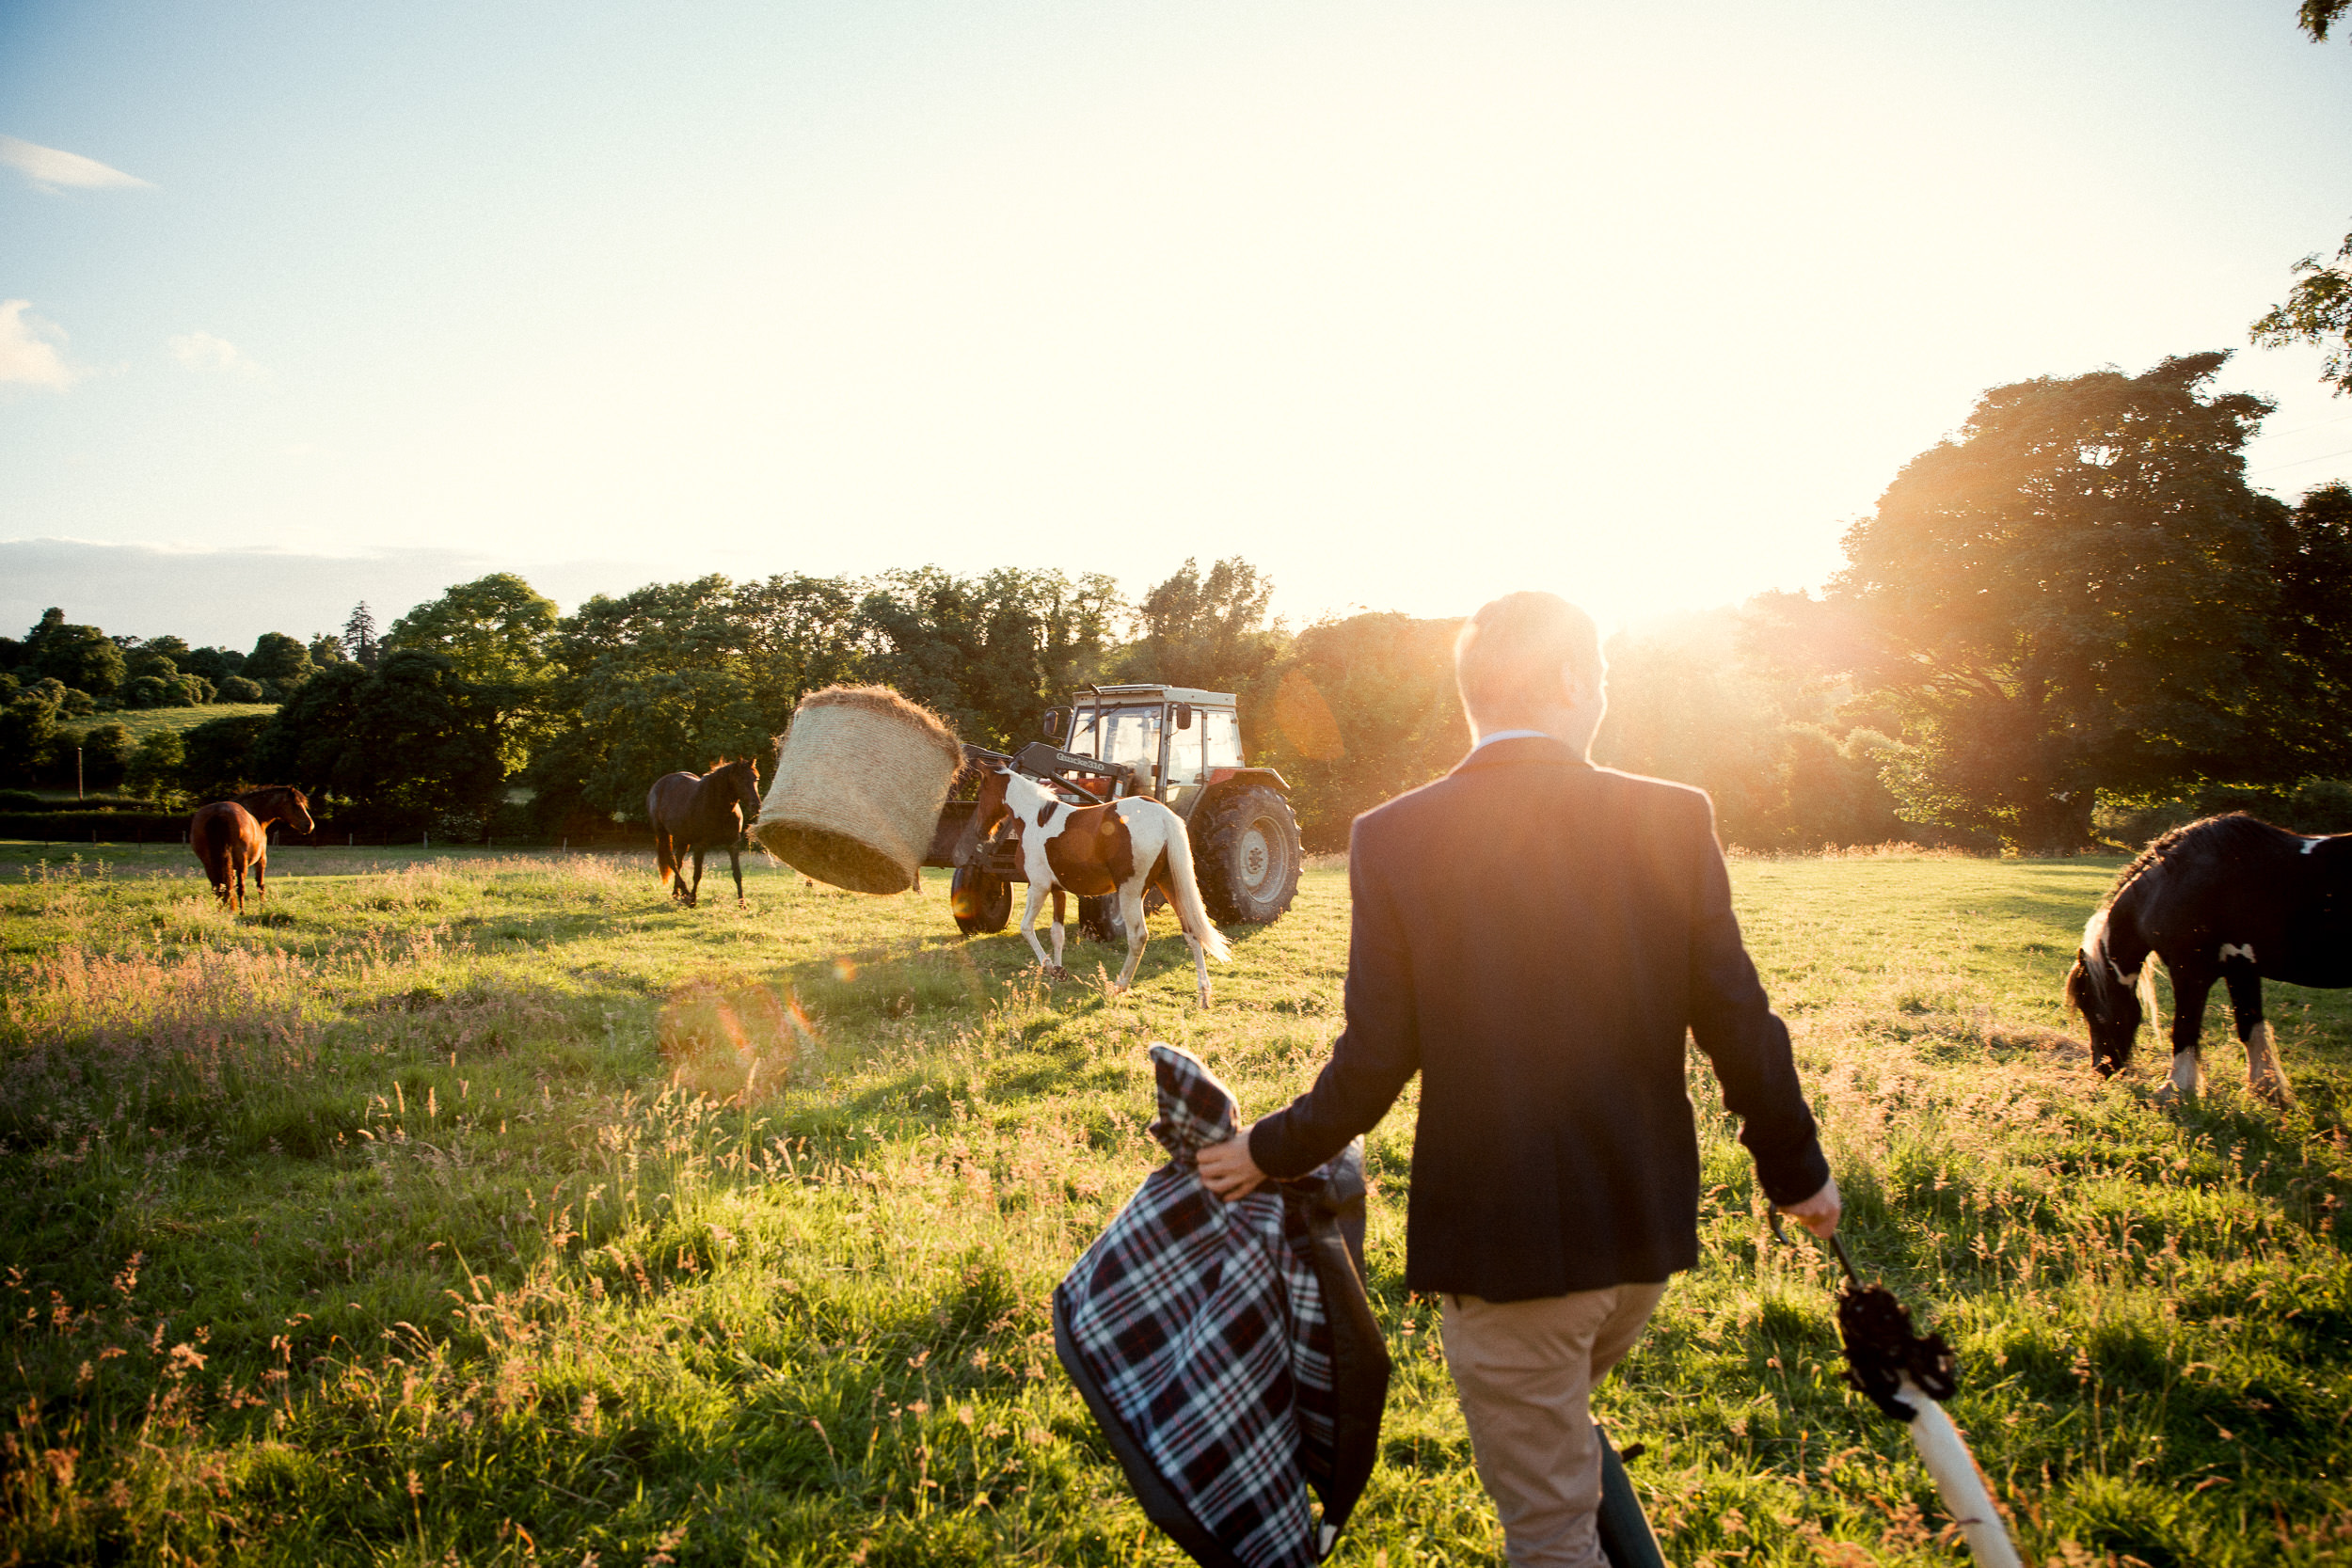 clairebyrnephotography-wedding-photography-ireland-engagement-sunset-farm-horses-57.jpg